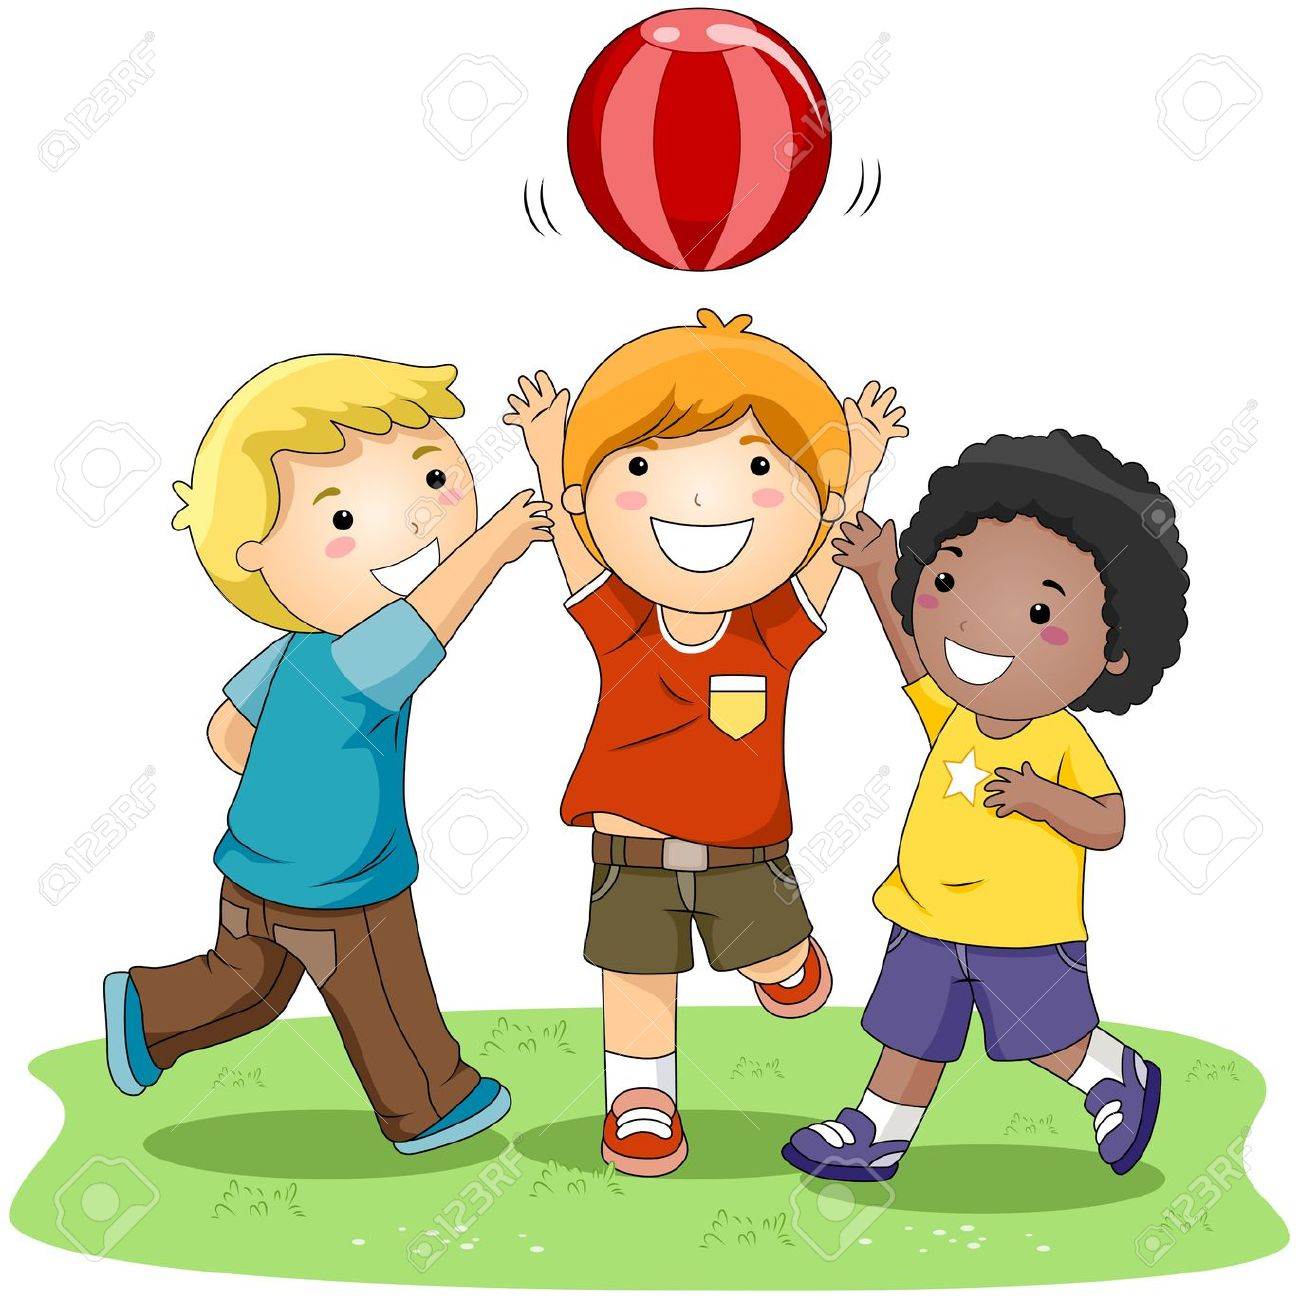 children playing ball in the park stock photo picture and royalty rh 123rf com Playing Outside Clip Art Now Playing Clip Art